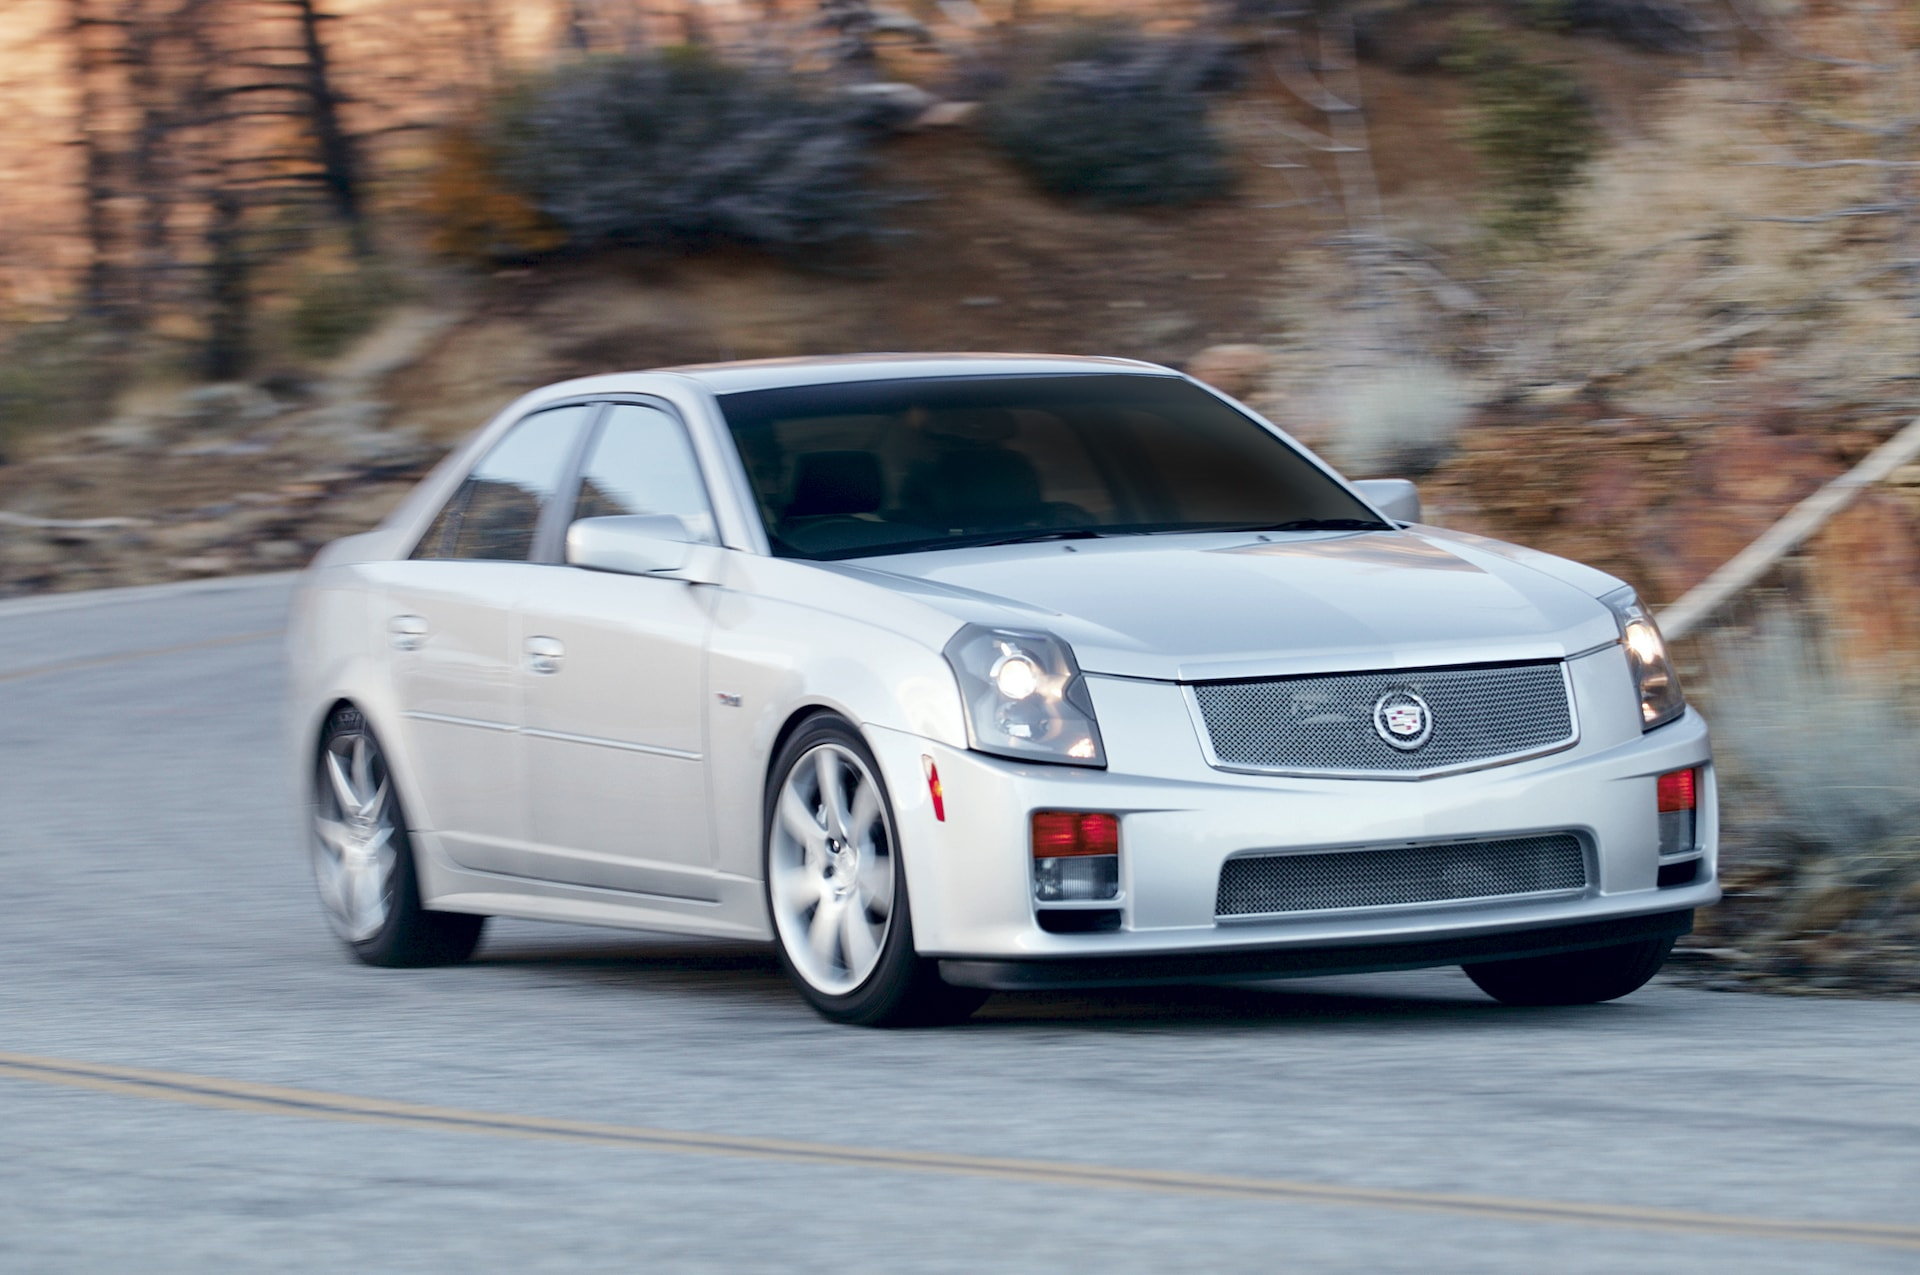 2005 Cadillac CTS V front three quarter in motion